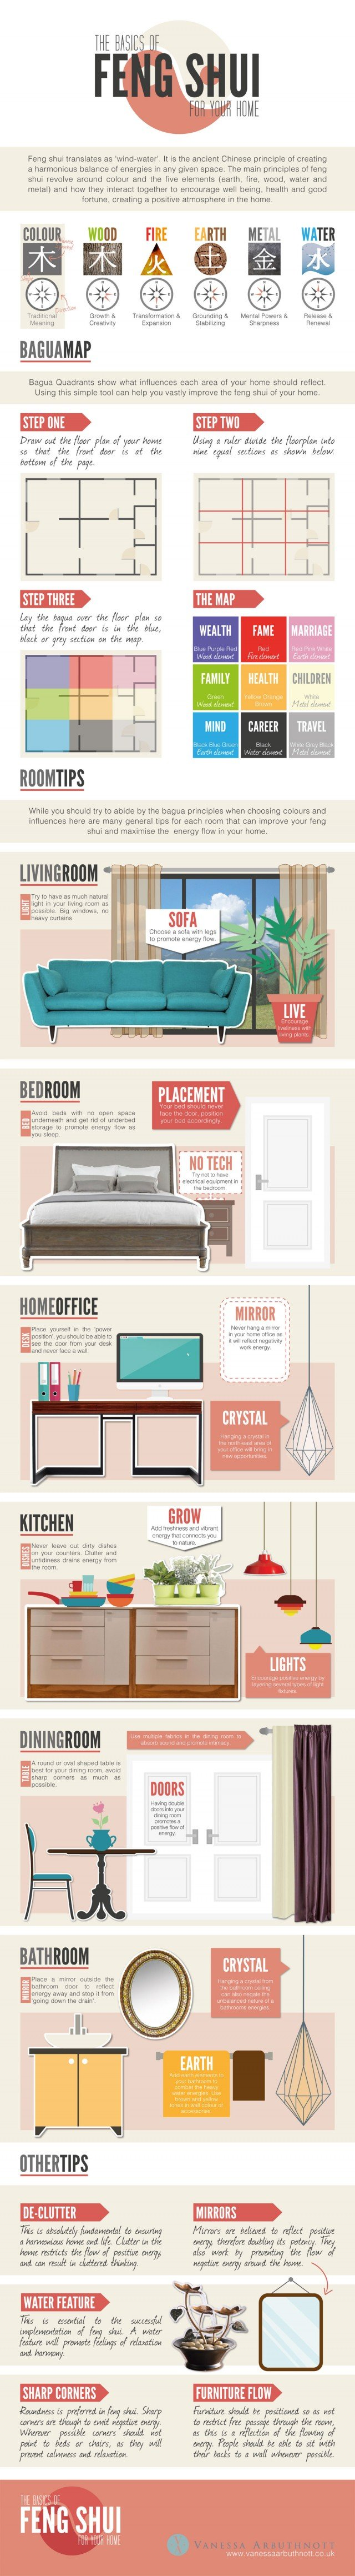 Water Feng Shui Element Infographics With Feng Shui Expert Guide Design Tips Techniques For Your Office Life Just